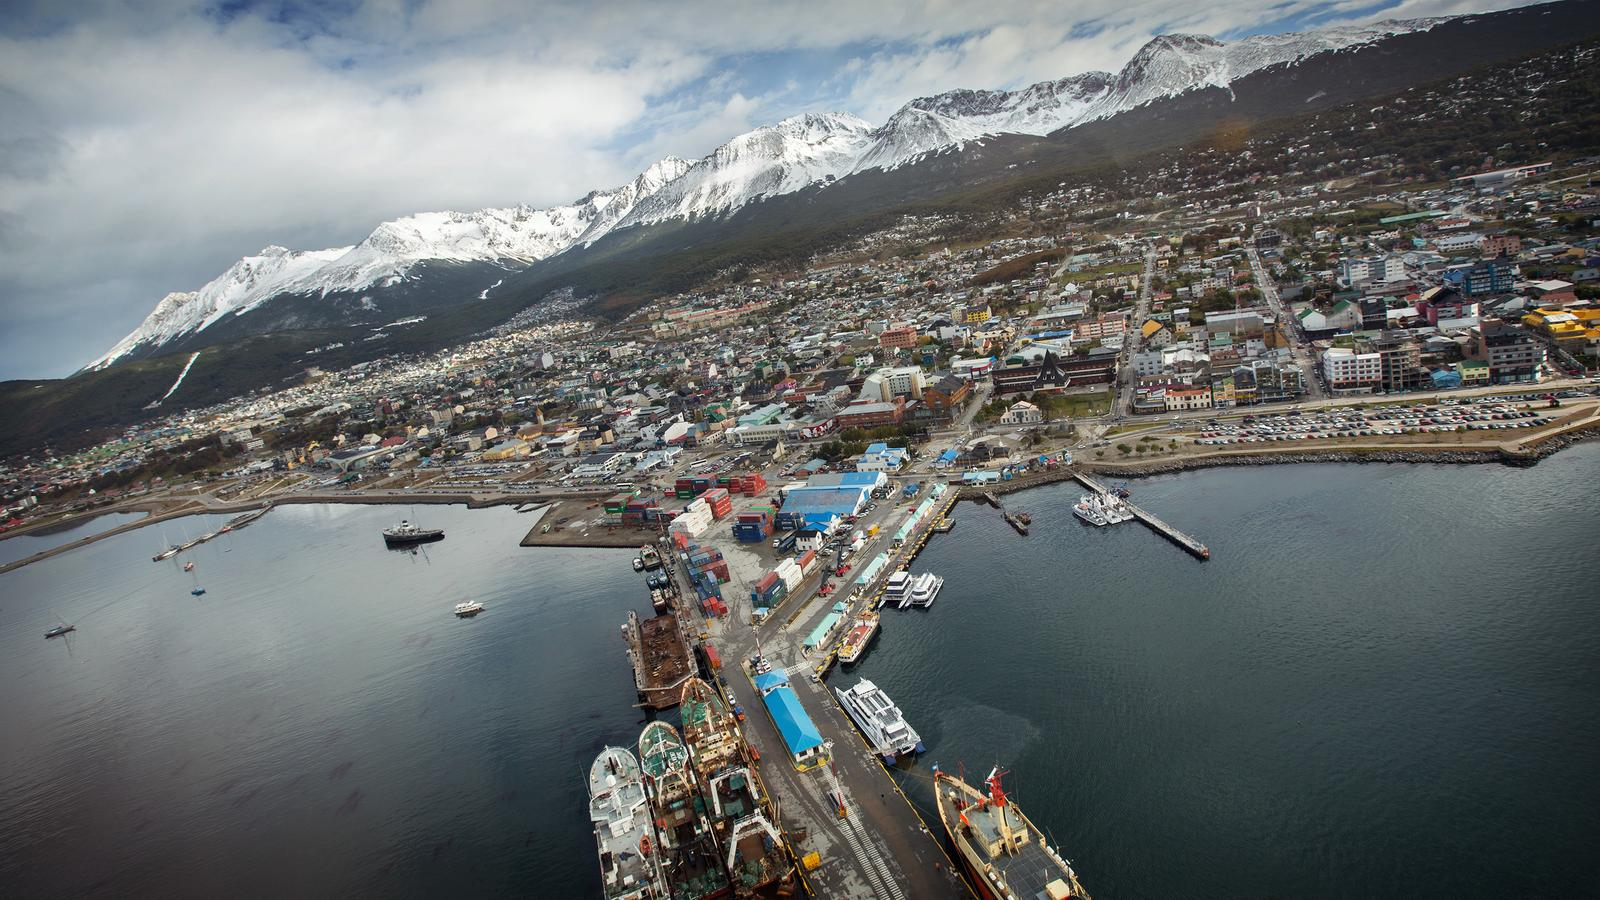 Aerial cityscape photo of the Ushuaia cost in Argentina